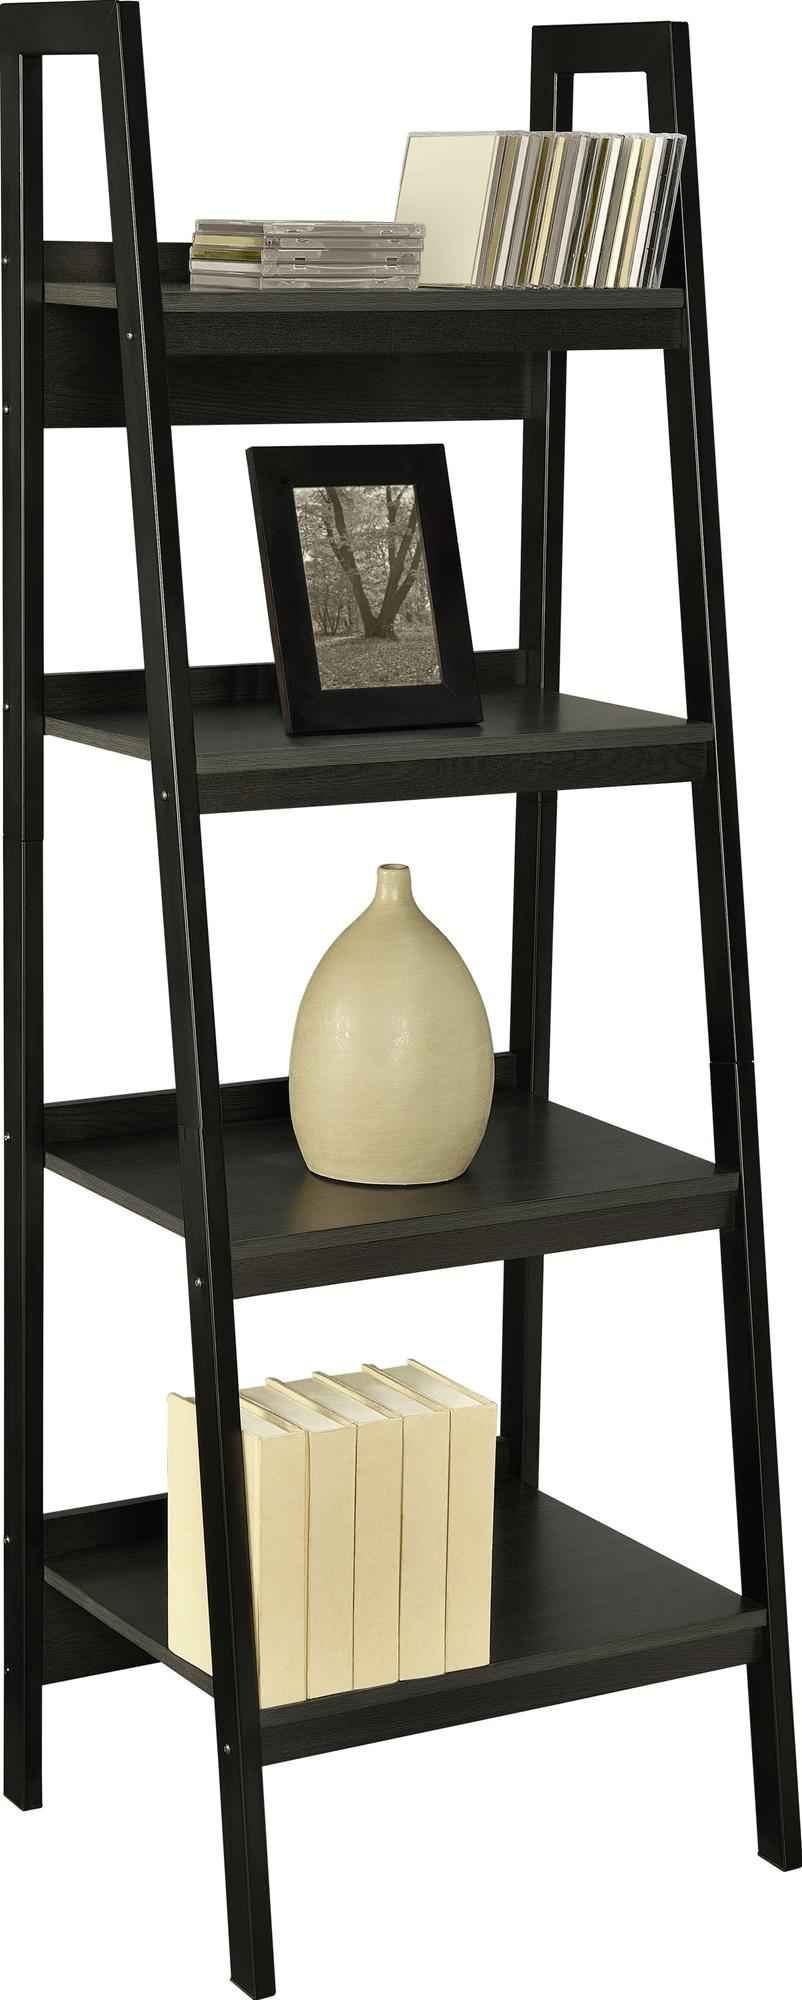 802x2000px 7 Top Ladder Bookshelves Ikea Picture in Furniture